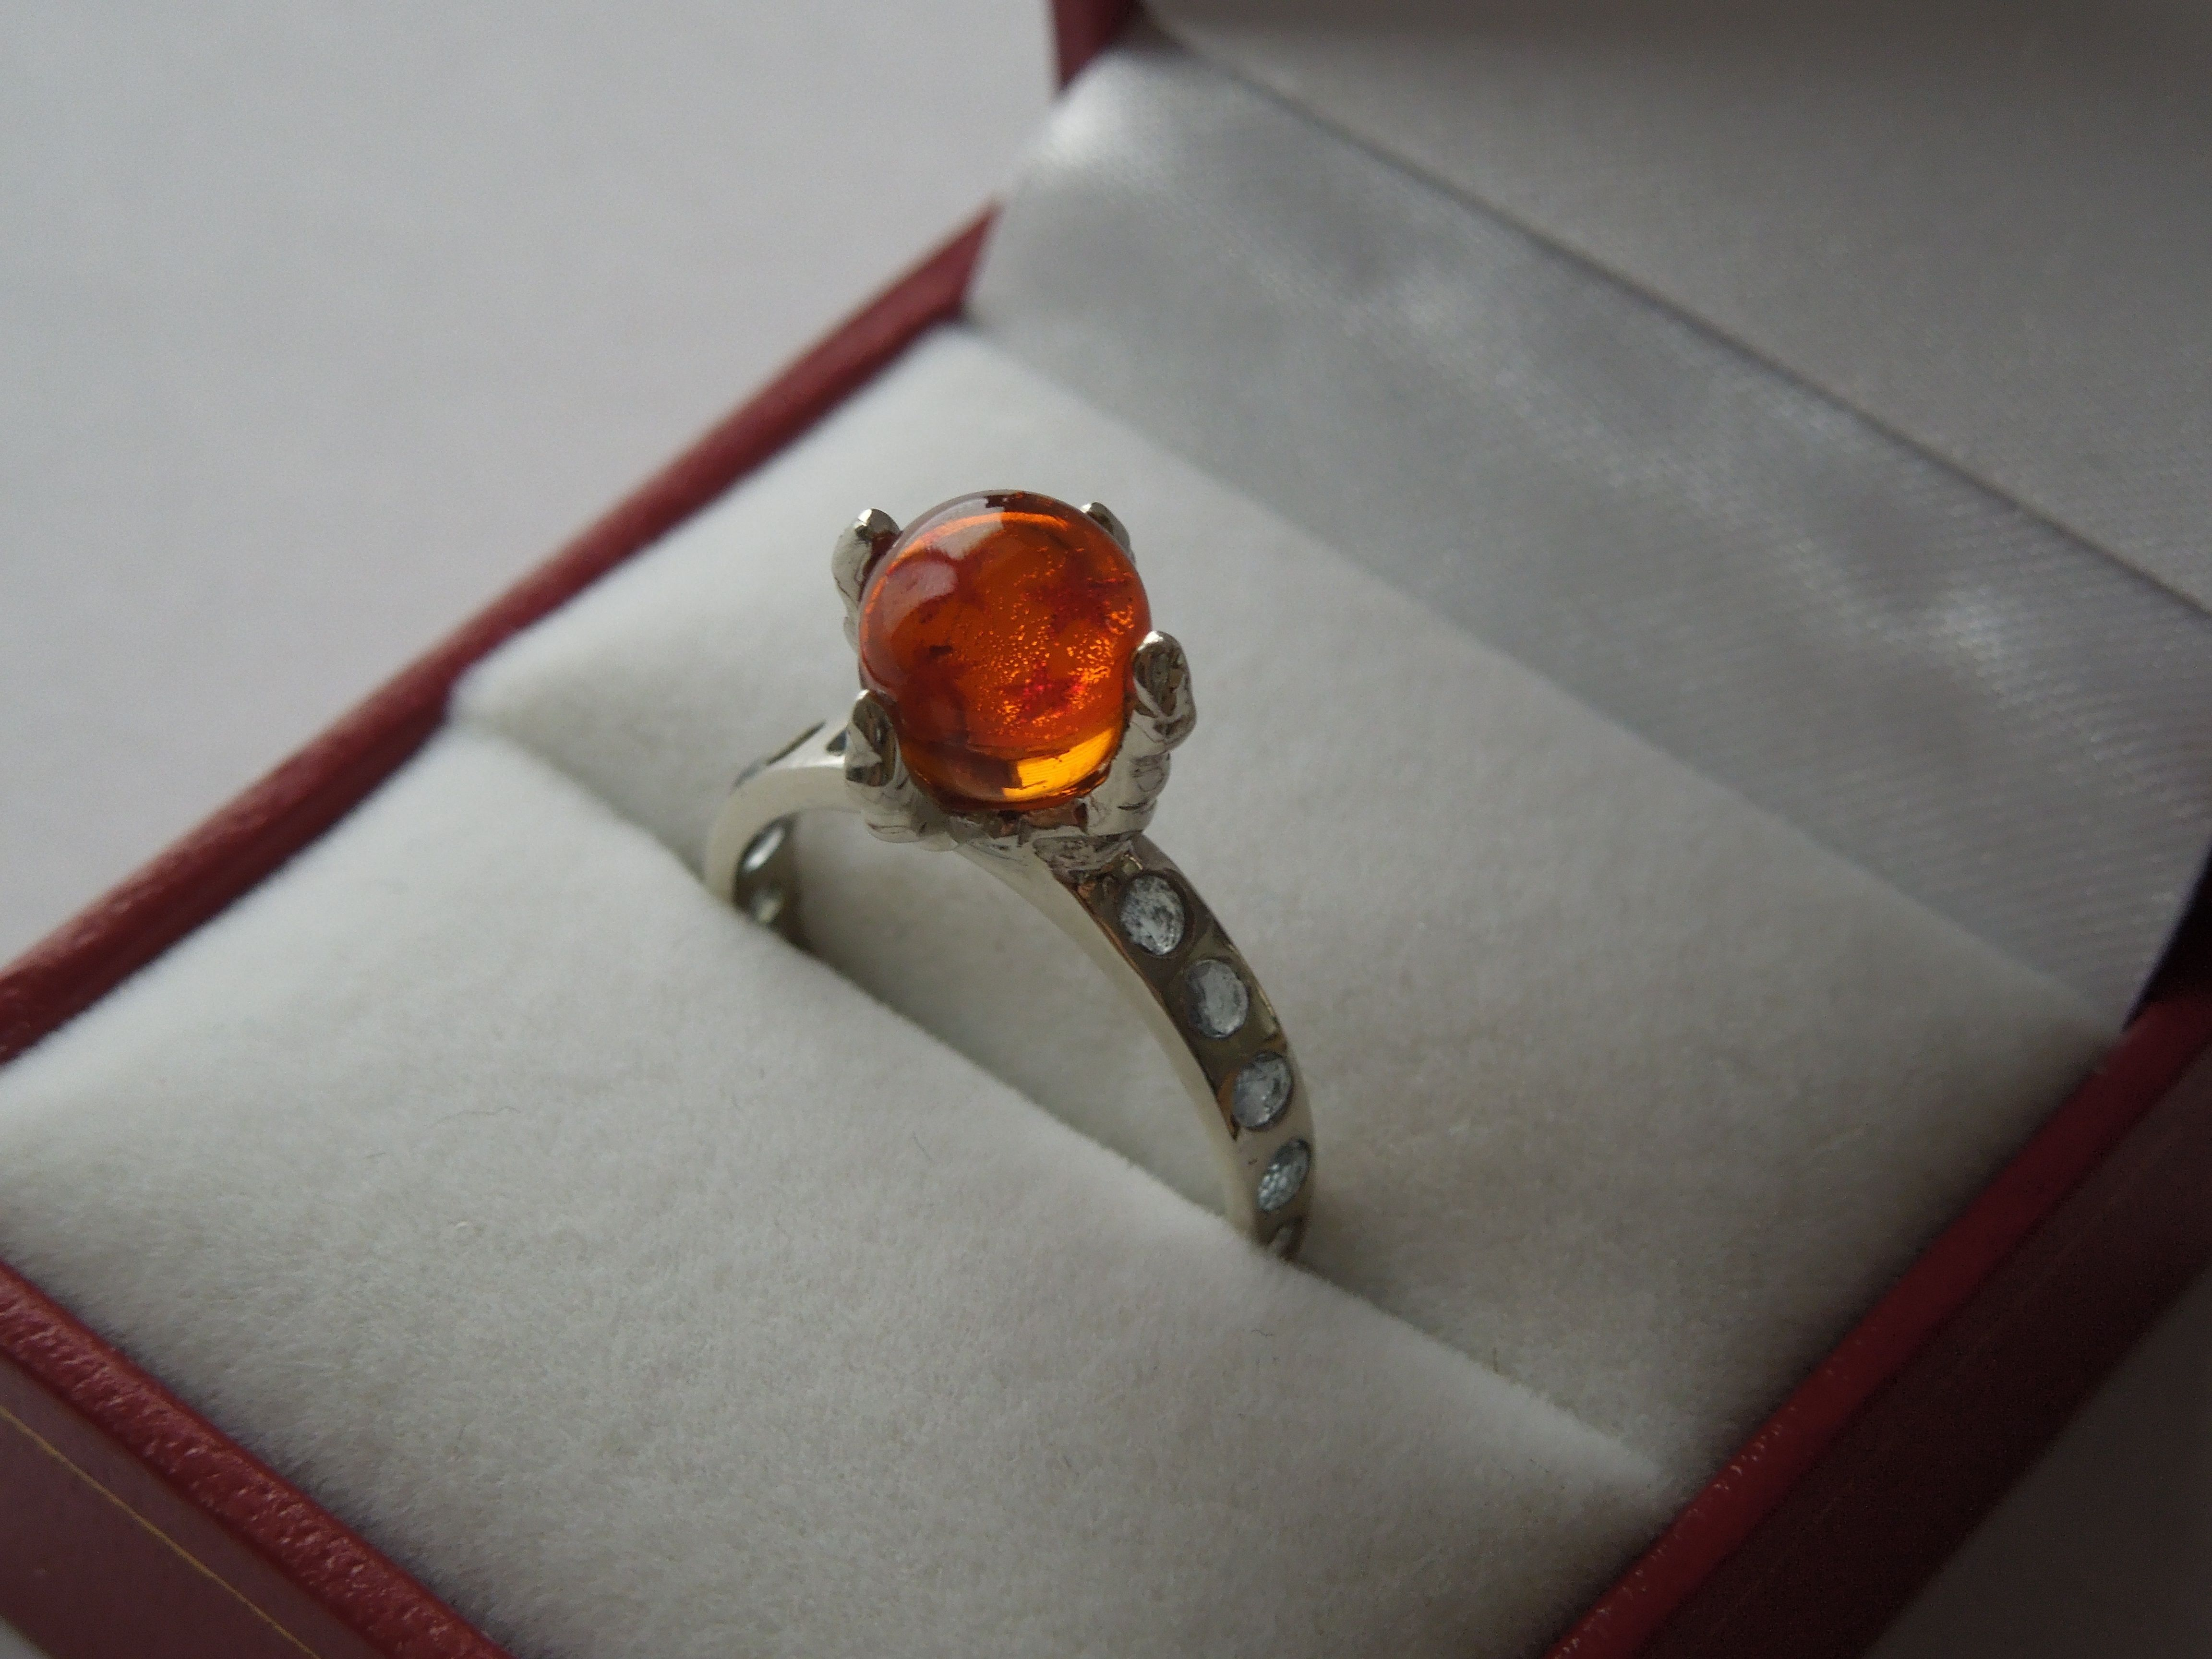 Custom dragonball z engagement ring by cicmil crowns for Dragon ball z bedroom ideas